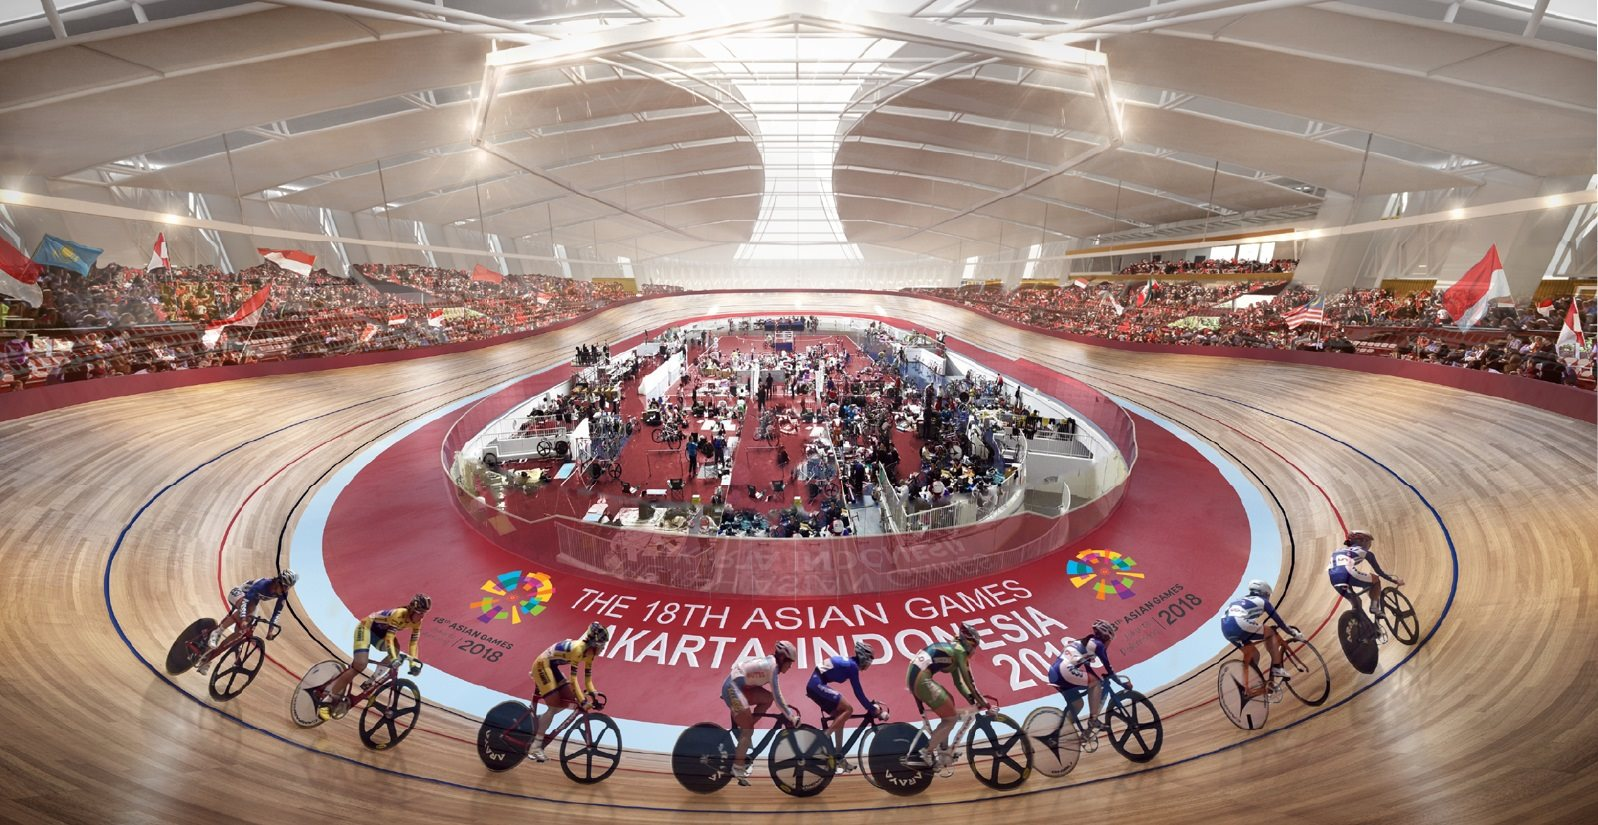 Cyclists riding around the new state of the art Velodrome that was created for the 2018 Asian Games in Jakarta